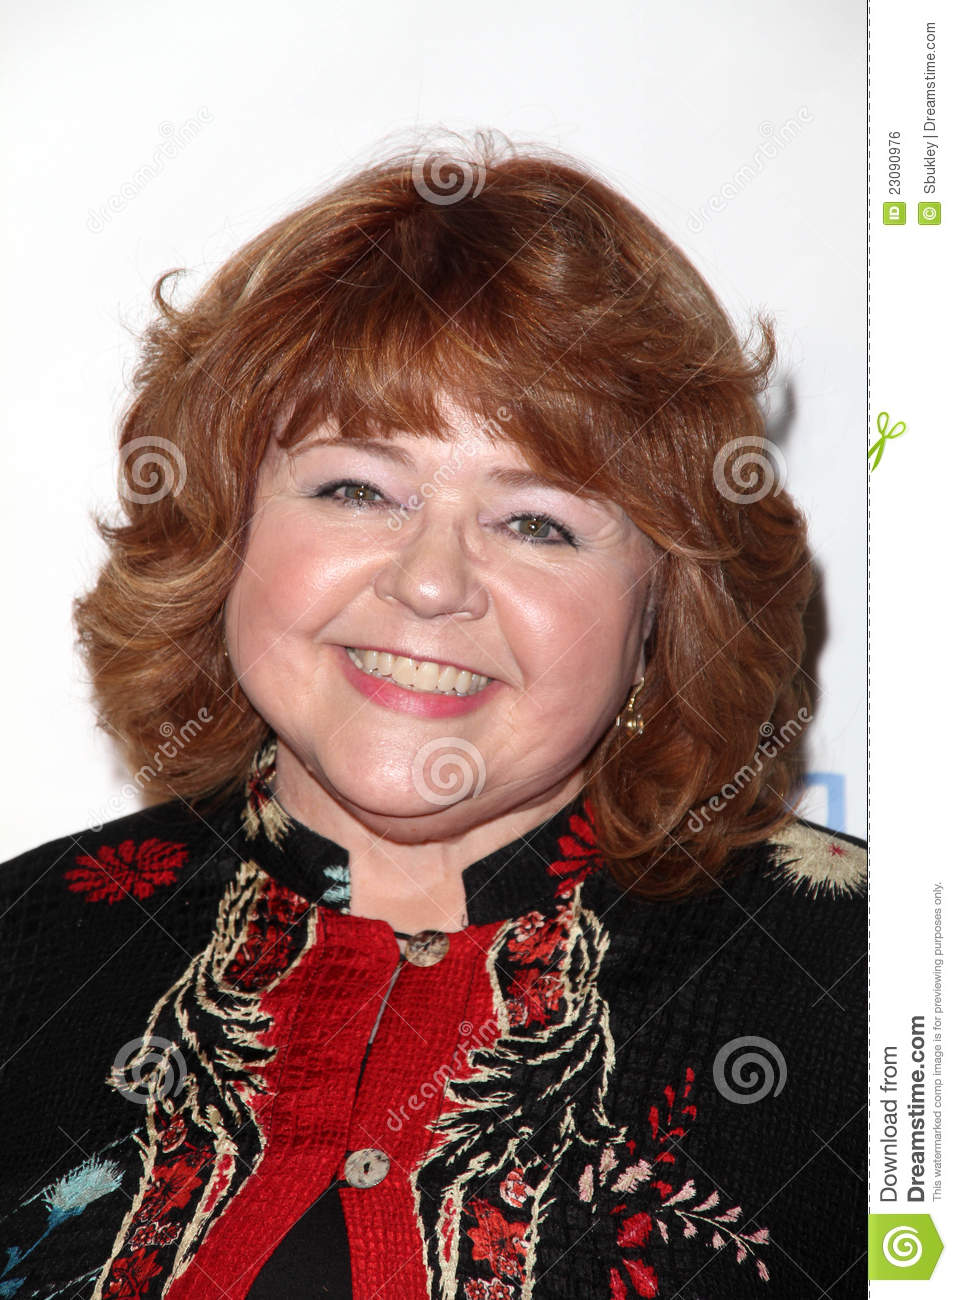 Watch Patrika Darbo video